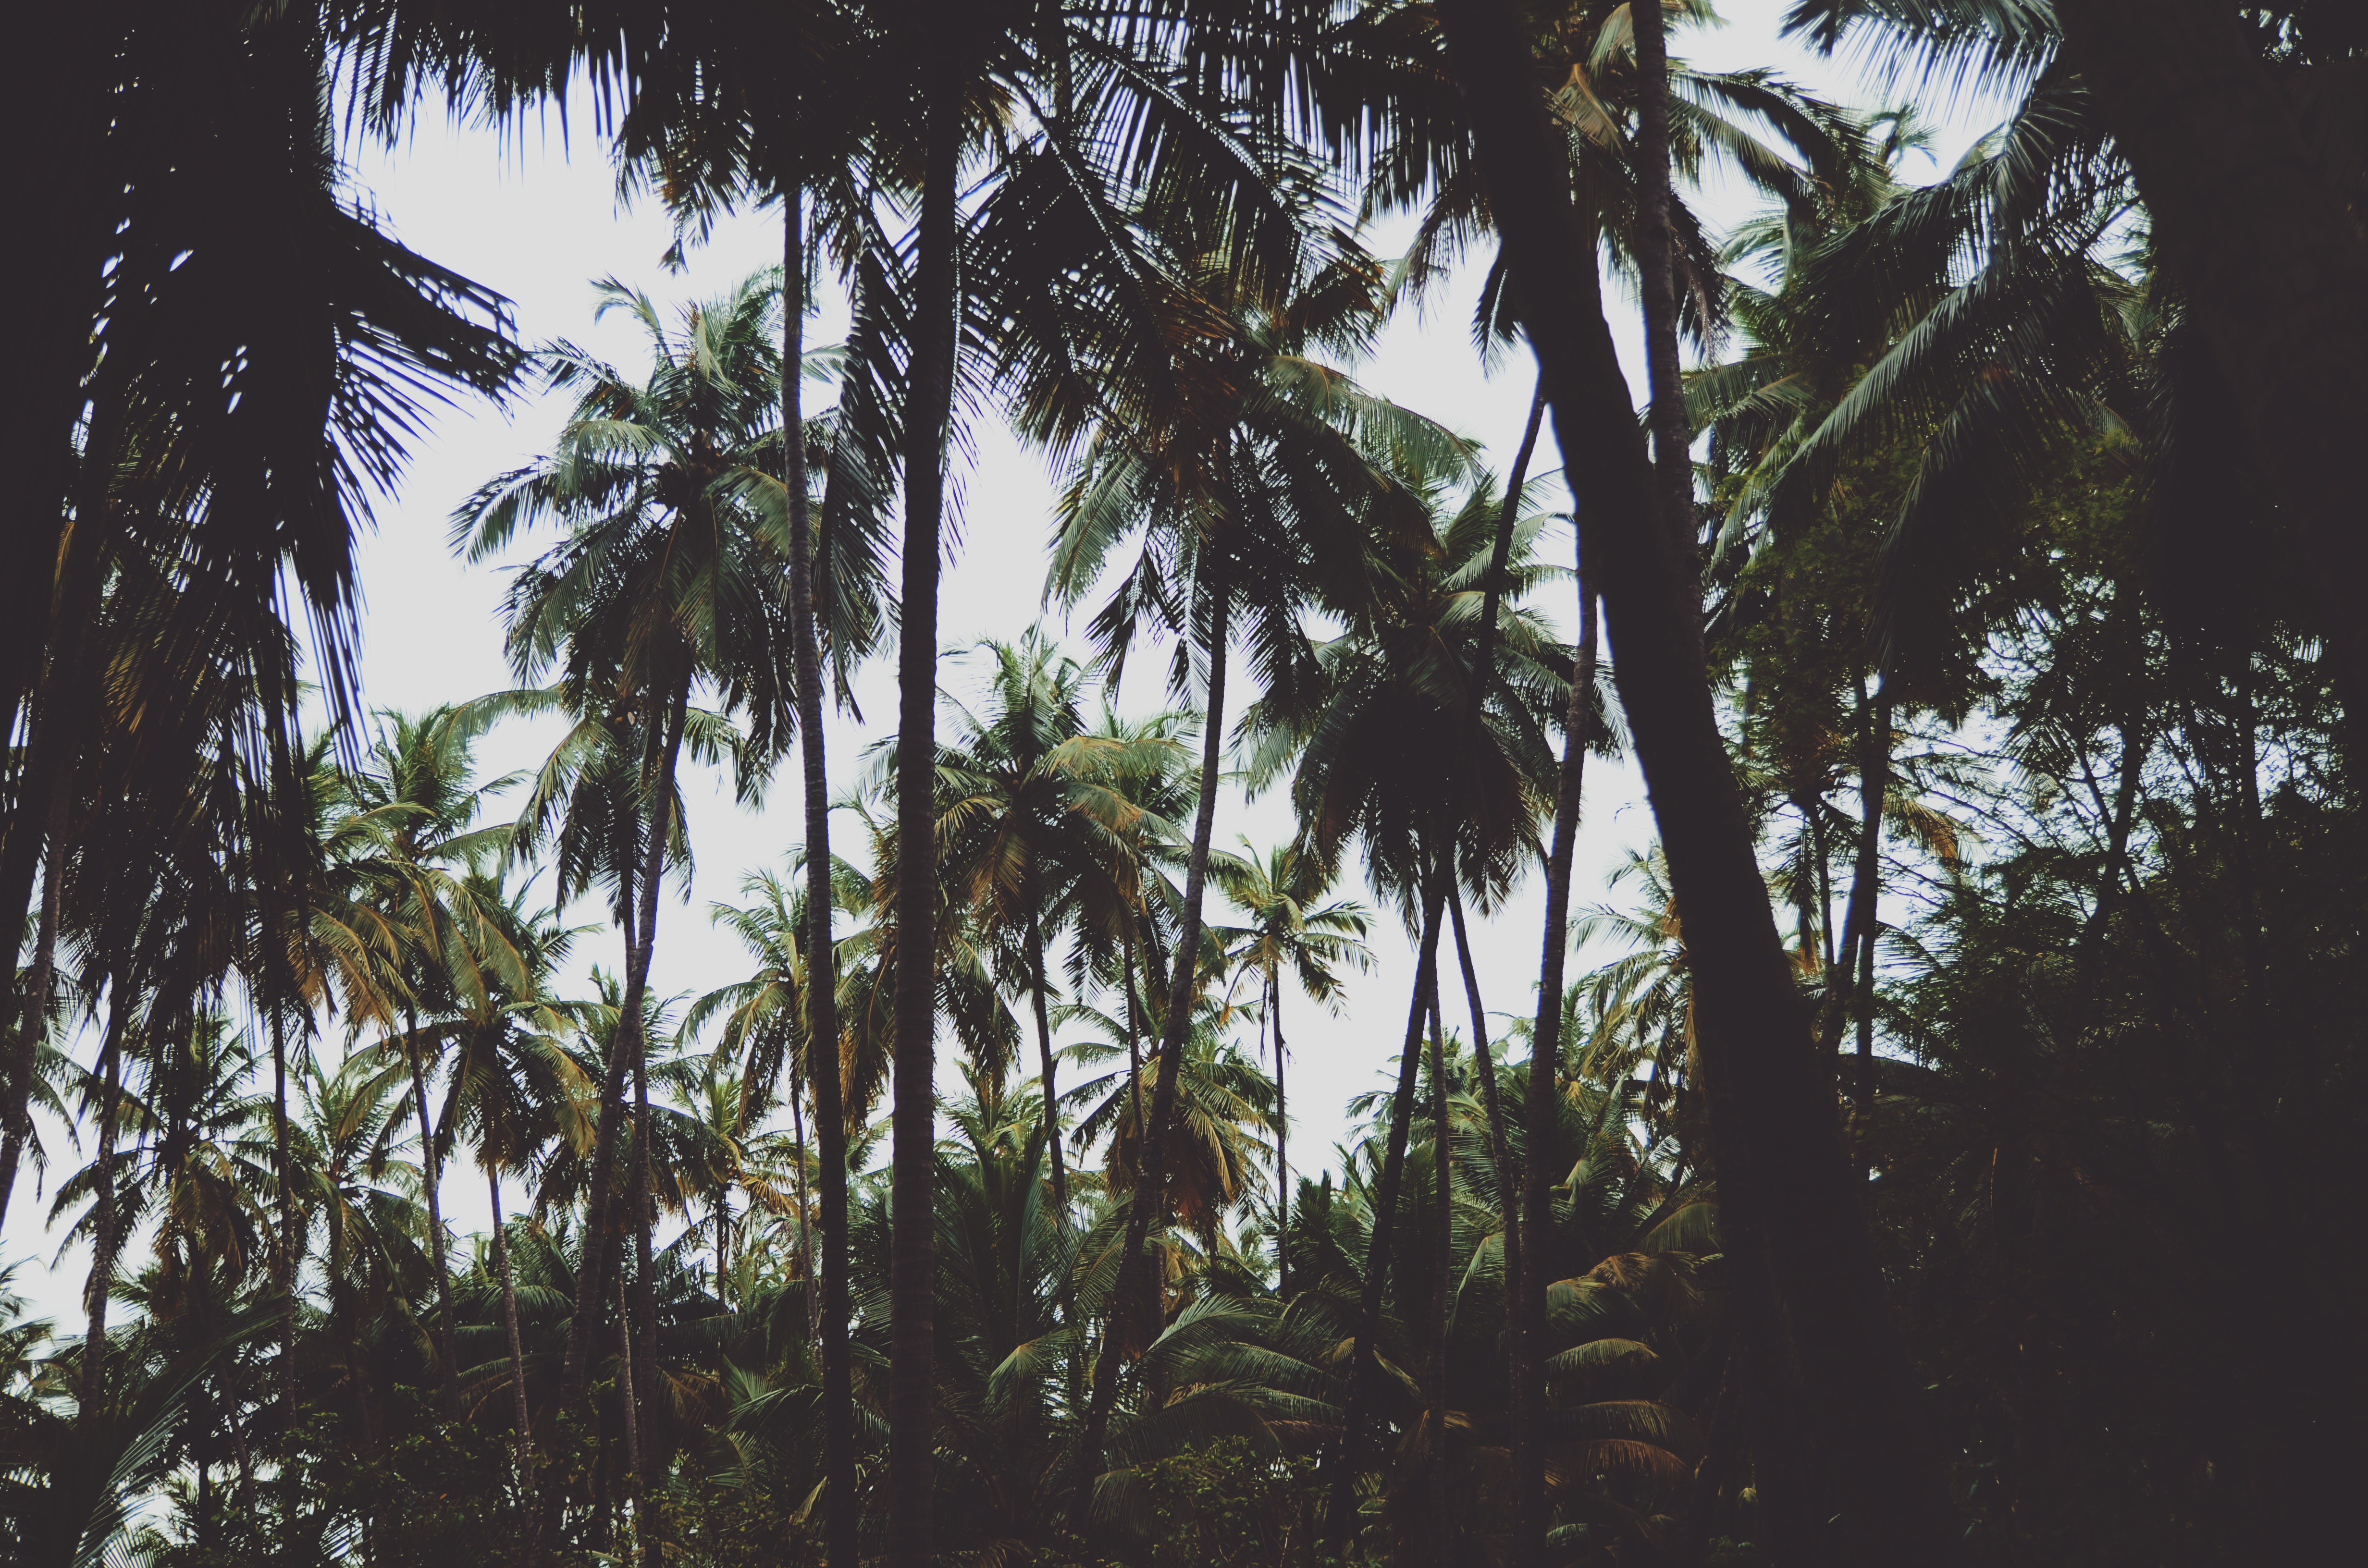 low-angle view of coconut trees